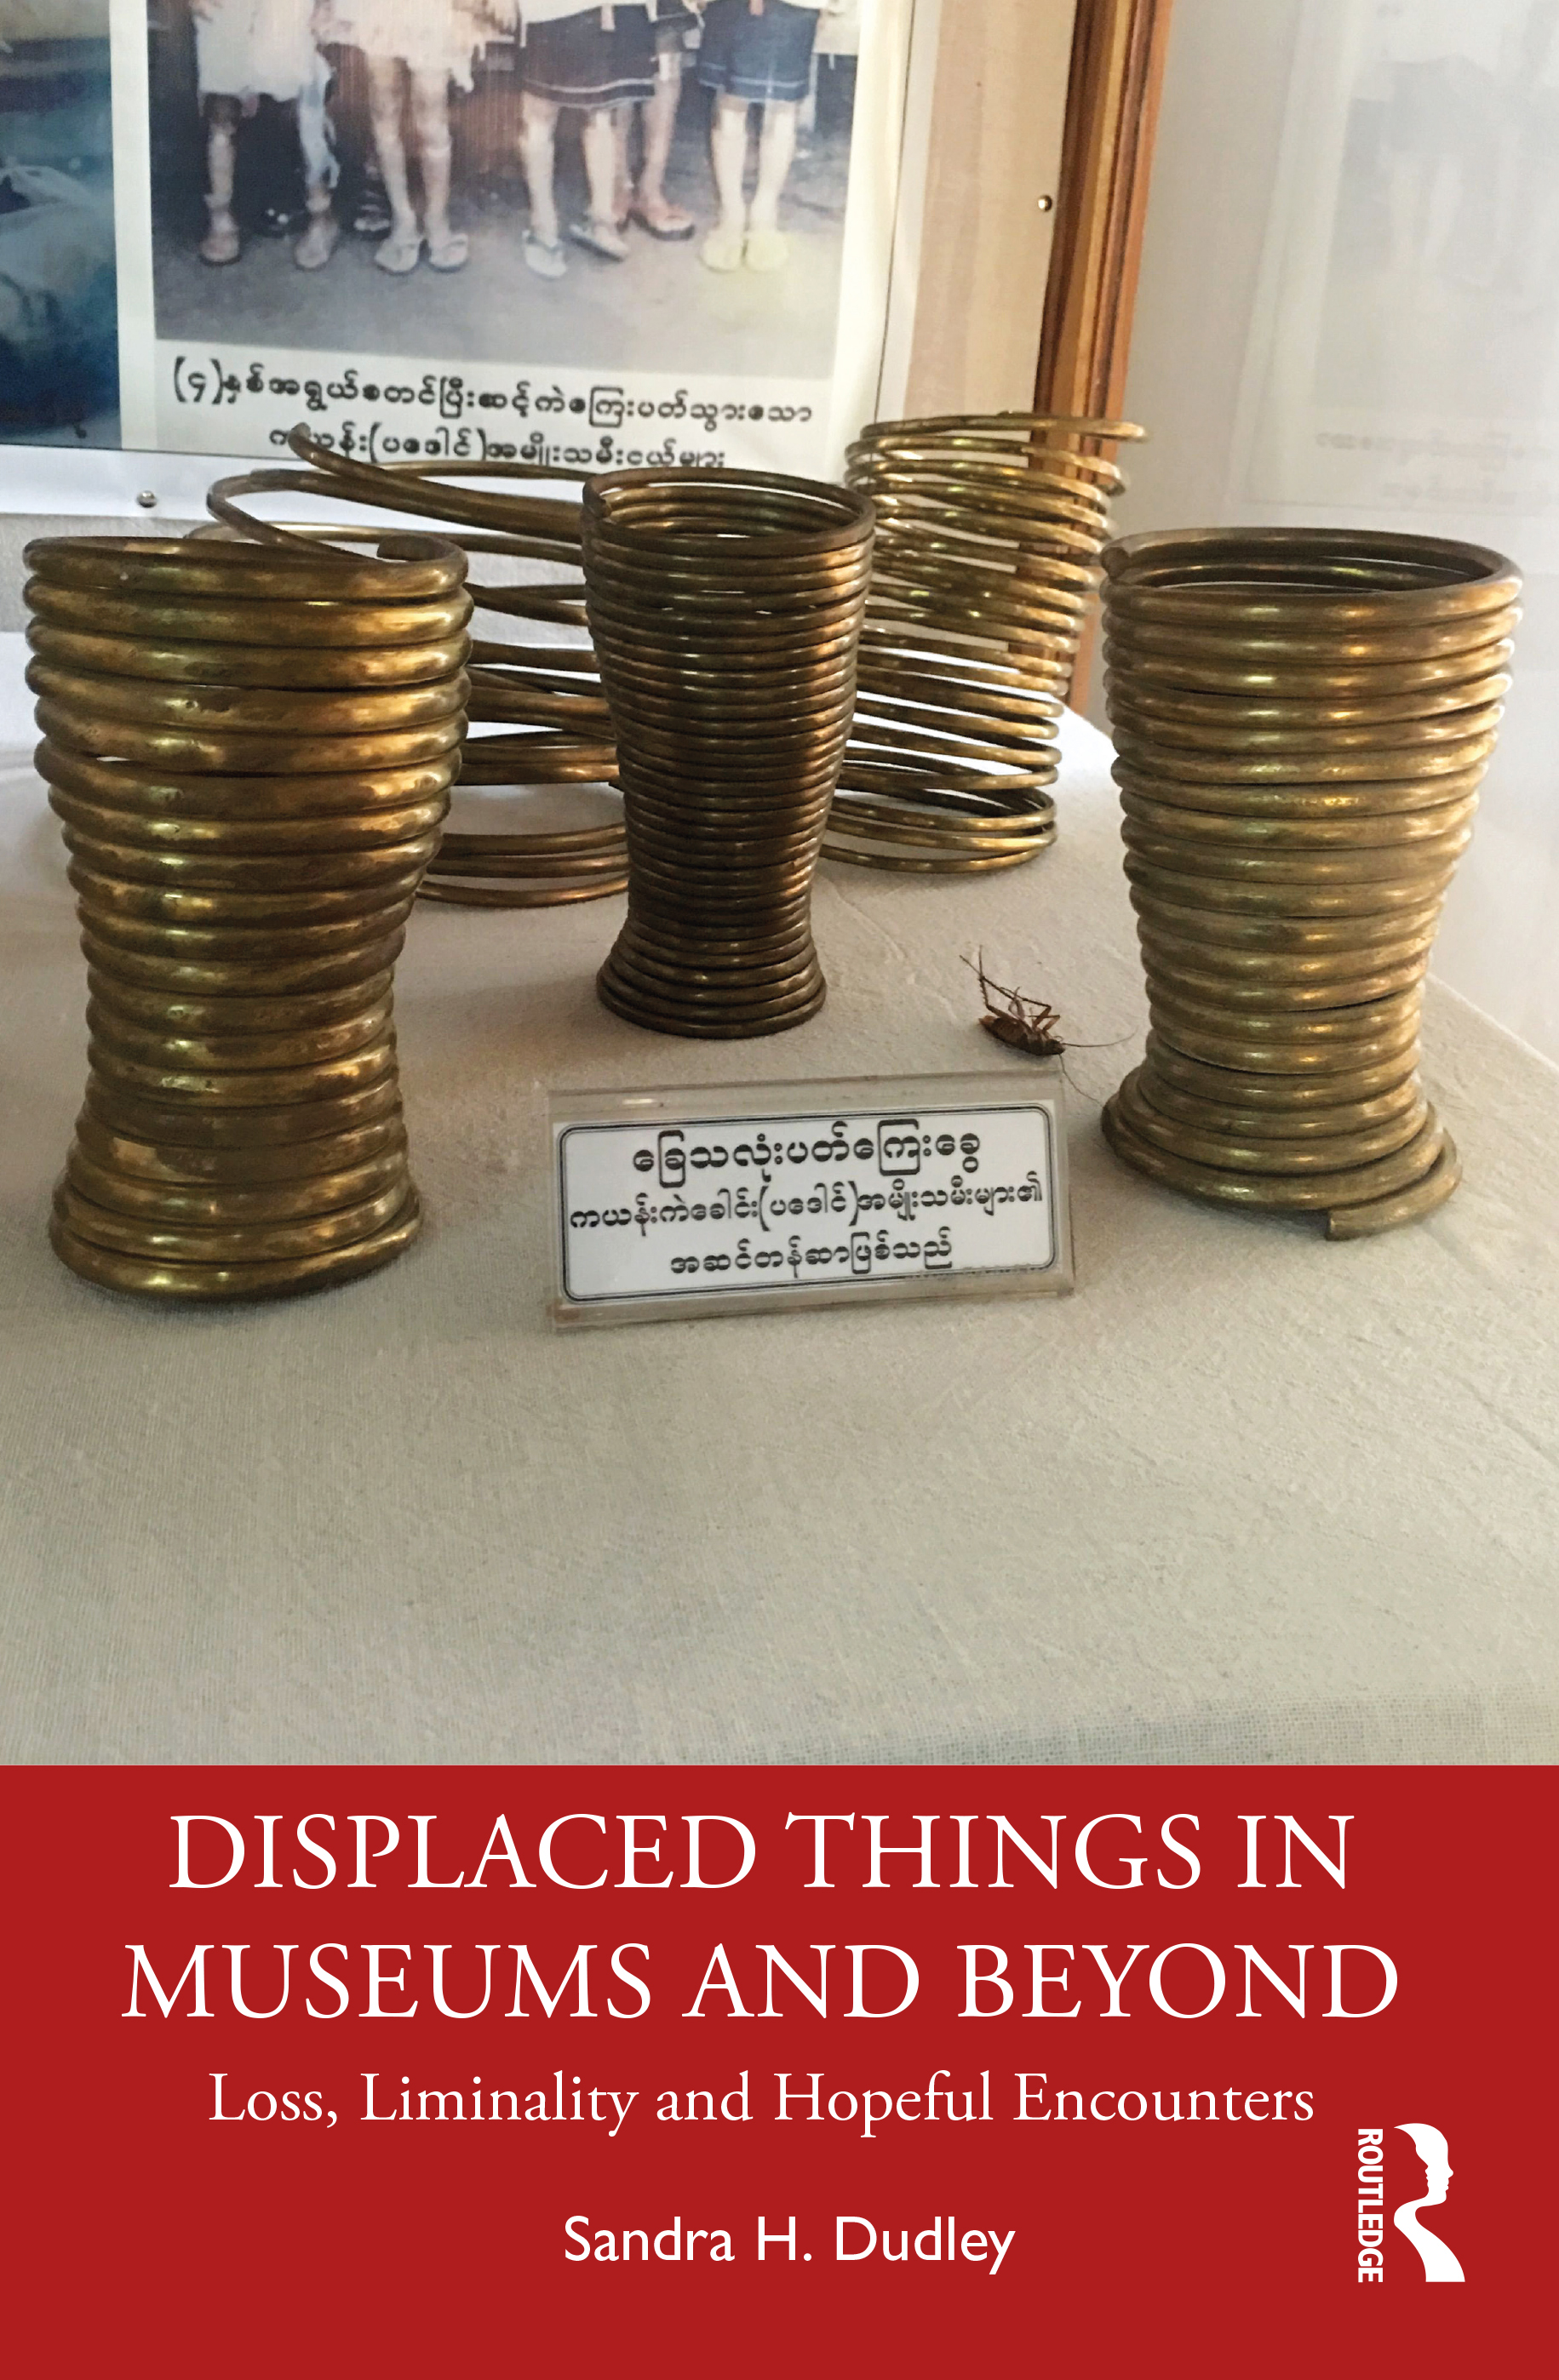 Displaced Things in Museums and Beyond